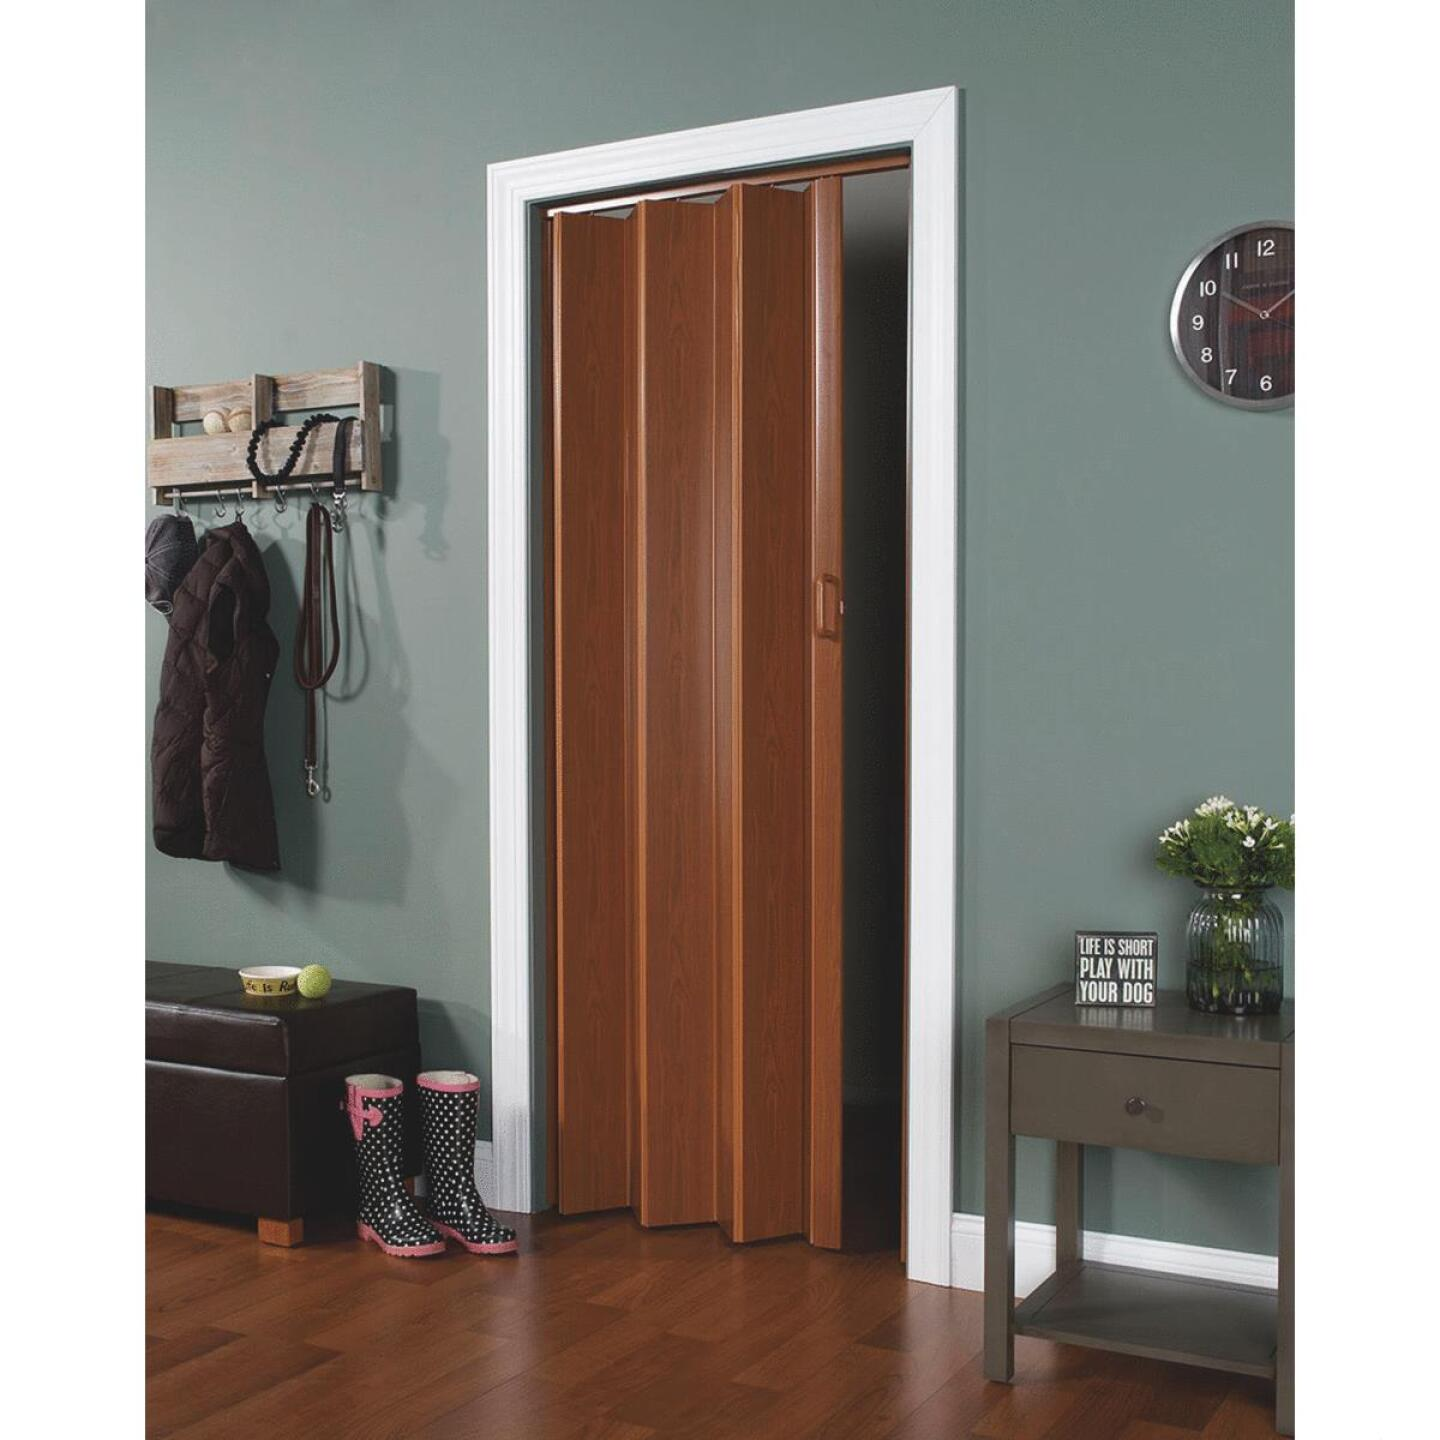 Spectrum Encore 24 In. to 36 In. W. x 80 In. H. Fruitwood Accordion Folding Door Image 1